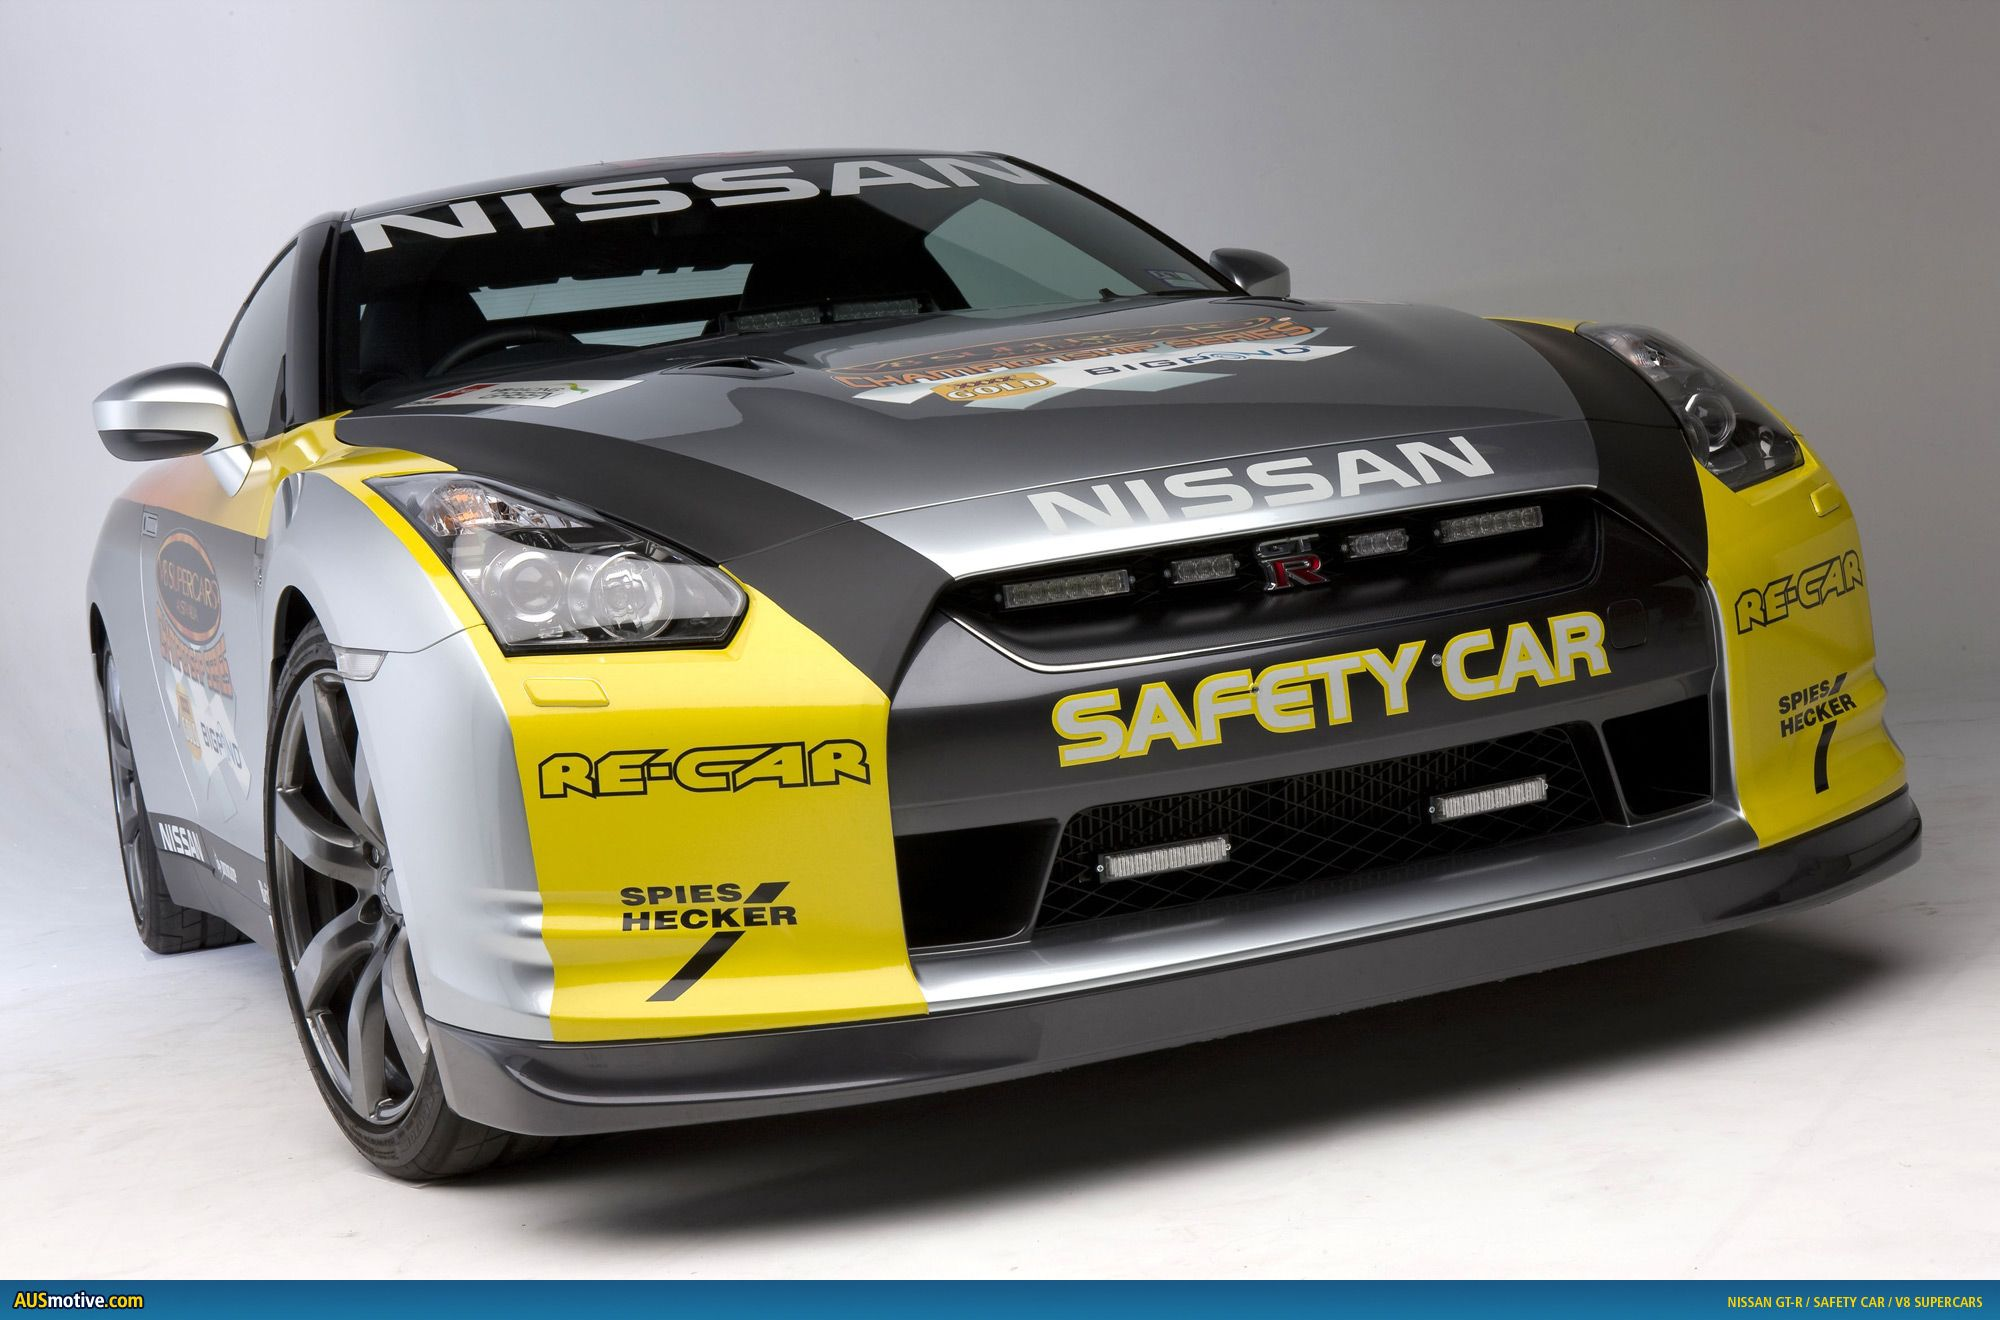 Super Cars Safety The Keynote As Nissan Brings Gt R To V8 Supercar Challenge